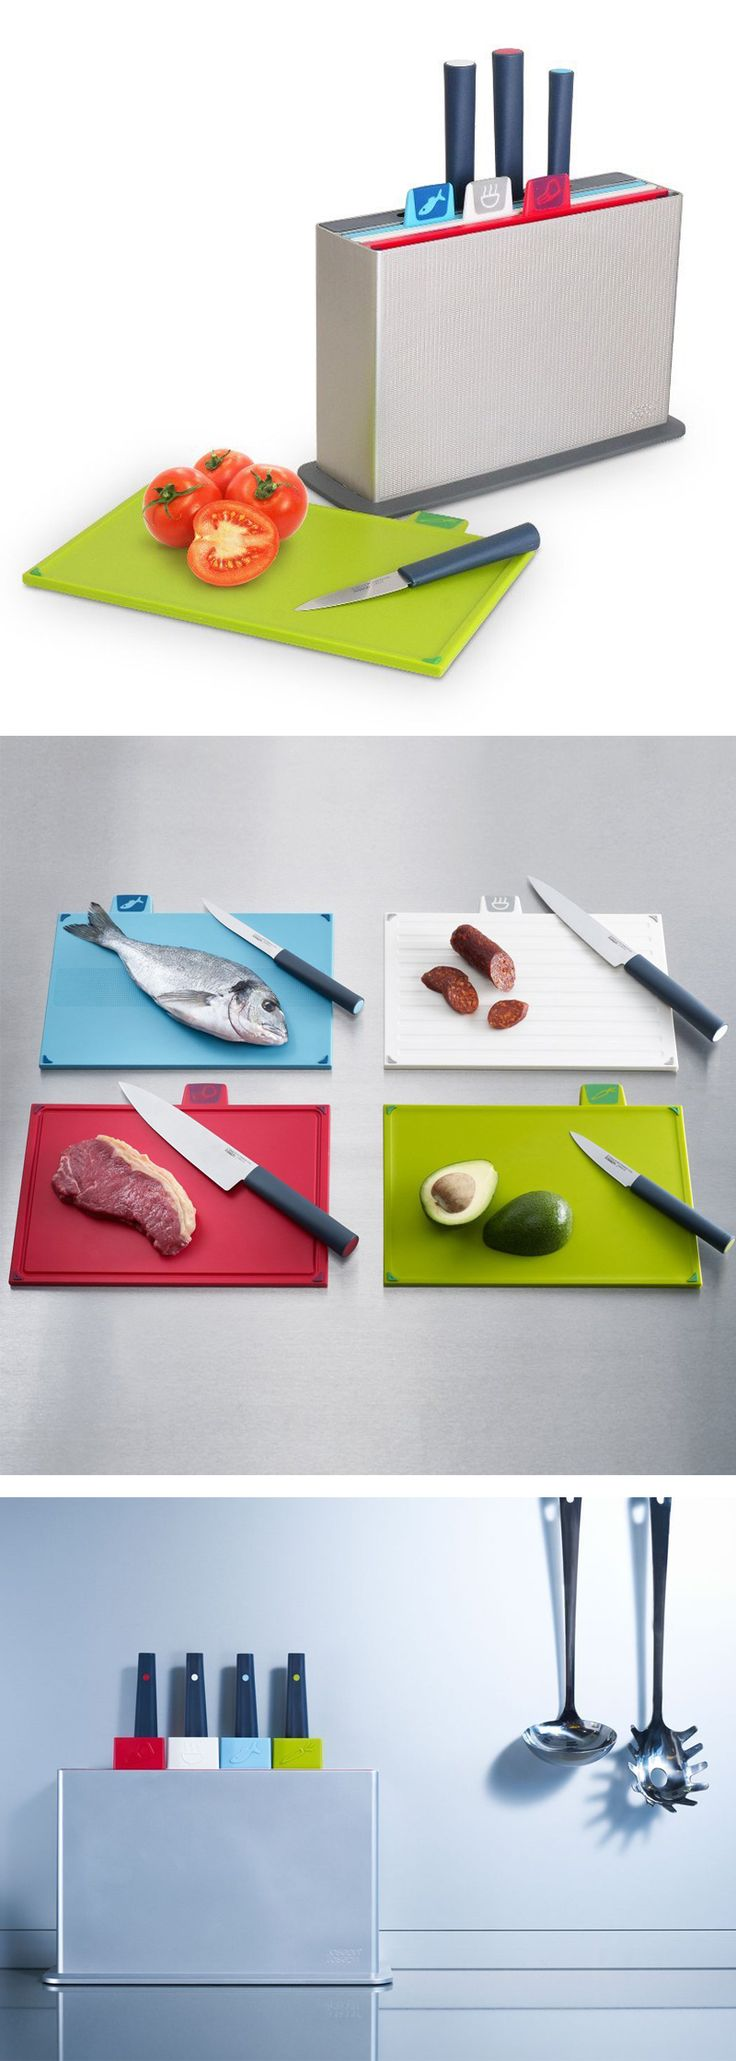 Check it out==> Take action and practice proper hygiene in the kitchen ASAP. Get organized and never be confused again. This set come in easy to read labels and index. Check it out==> http://gwyl.io/joseph-joseph-advanced-knives-chopping-boards/